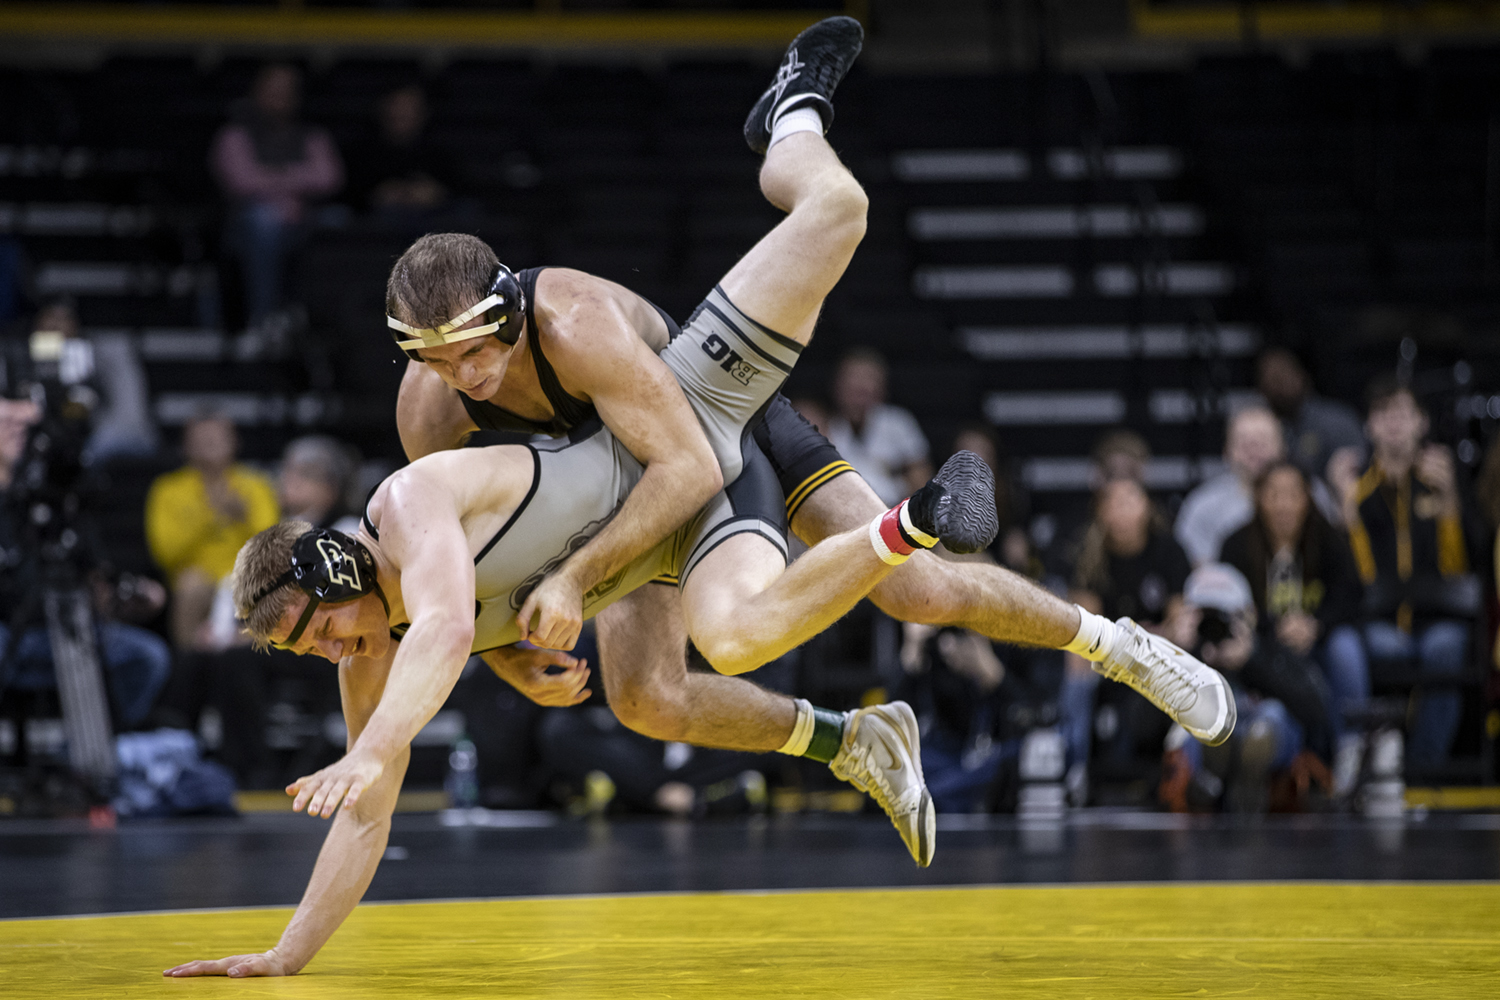 Iowa's Carter Happell wrestles with Purdue's Parker Filius during Iowa's dual meet against Purdue at Carver-Hawkeye Arena in Iowa City on Saturday, Nov. 24, 2018. Happel defeated Filius 2-0 and the Hawkeyes defeated the Boilermakers 26-9.